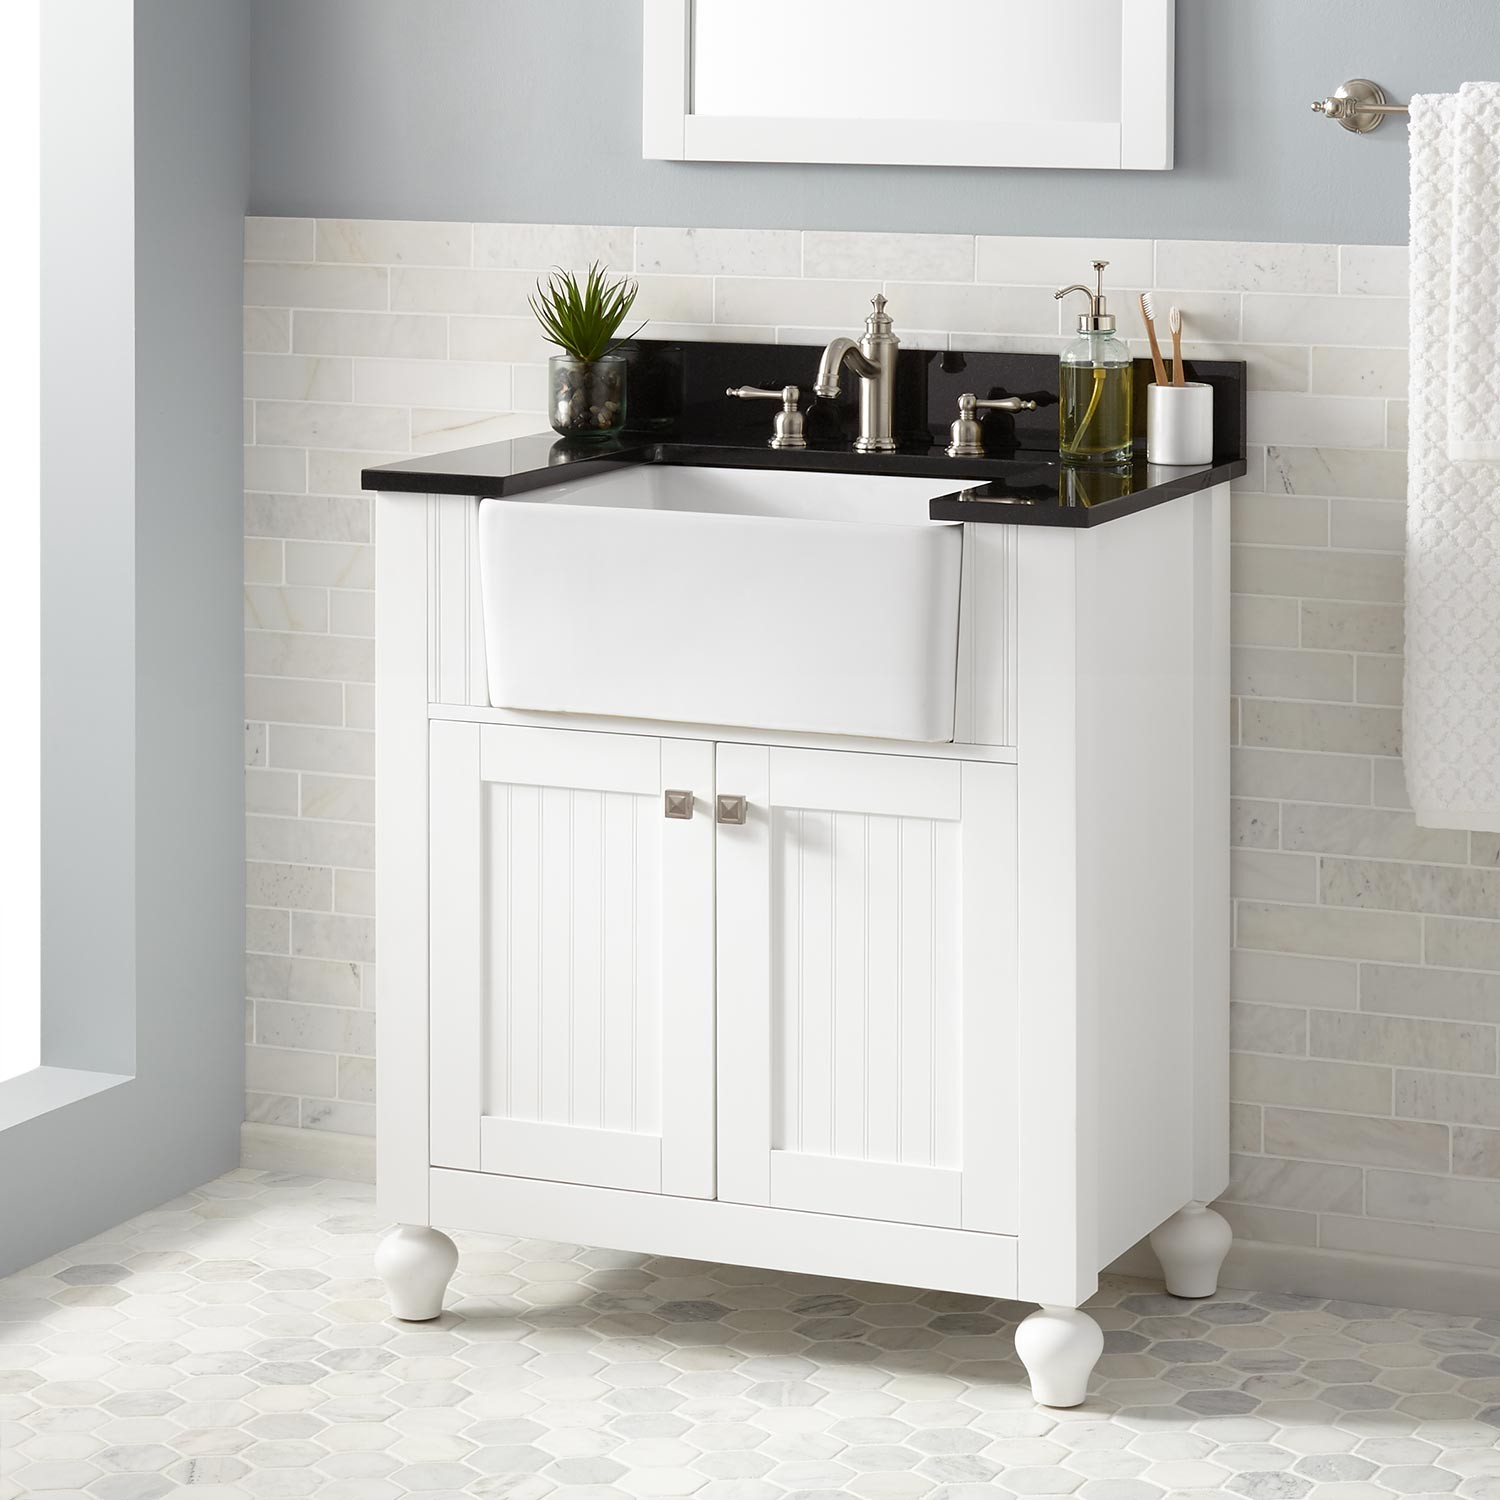 "Inspirational 30"" Nellie Farmhouse Sink Vanity - White - Bathroom for Farmhouse Sink In Bathroom"